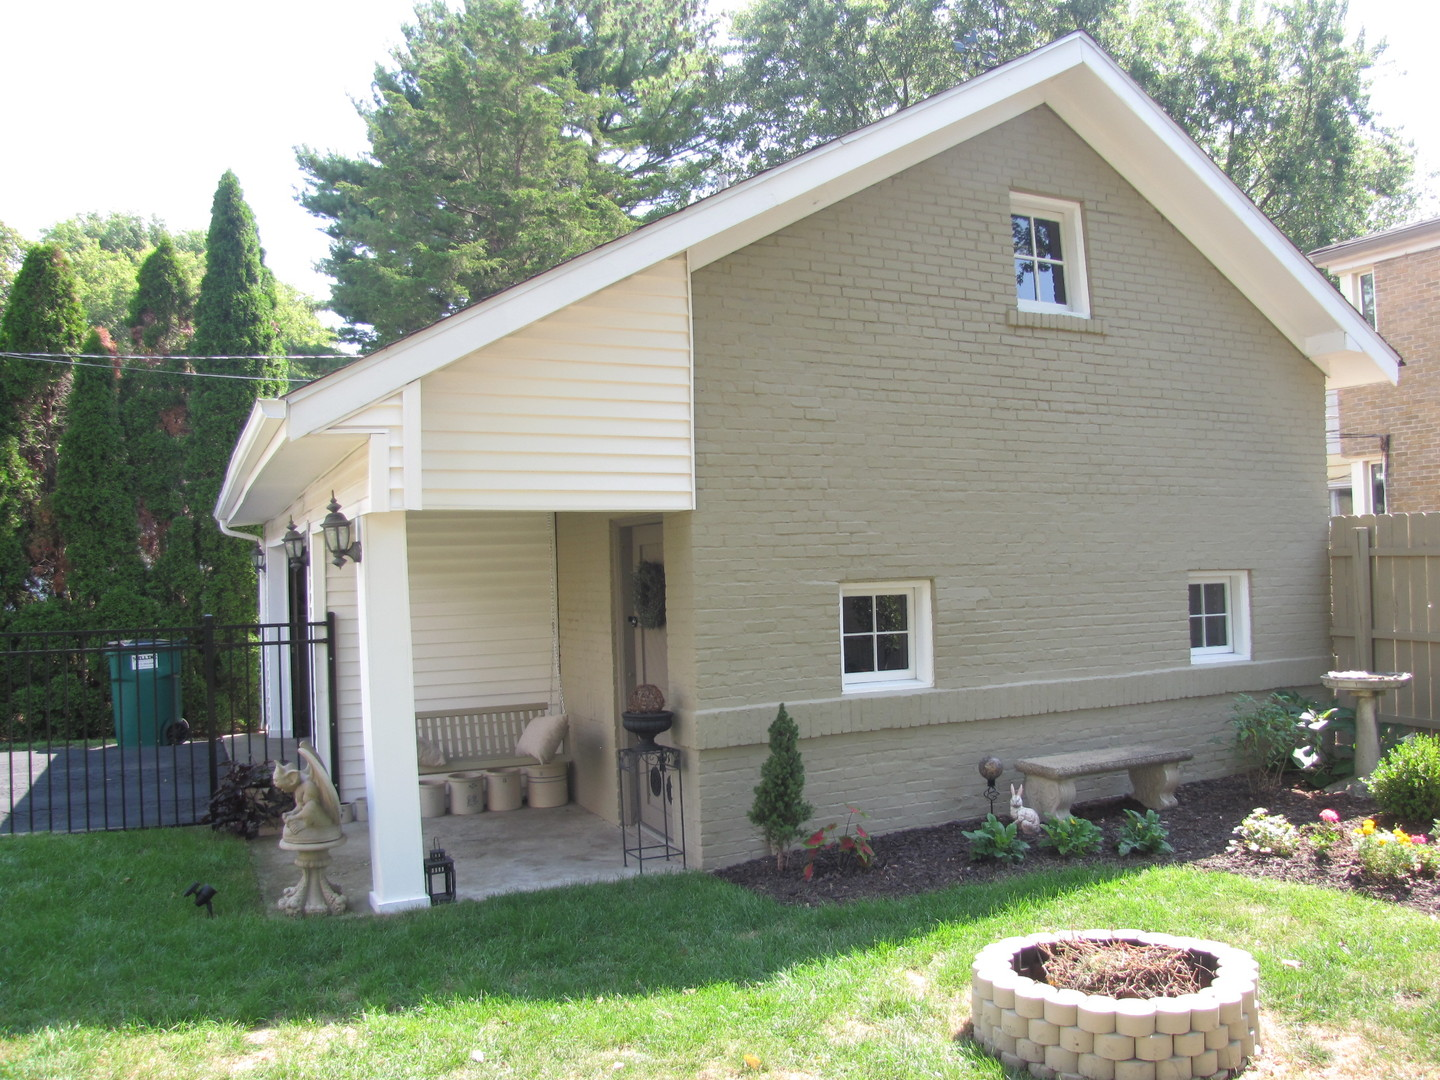 813 West Healey, Champaign, Illinois, 61820